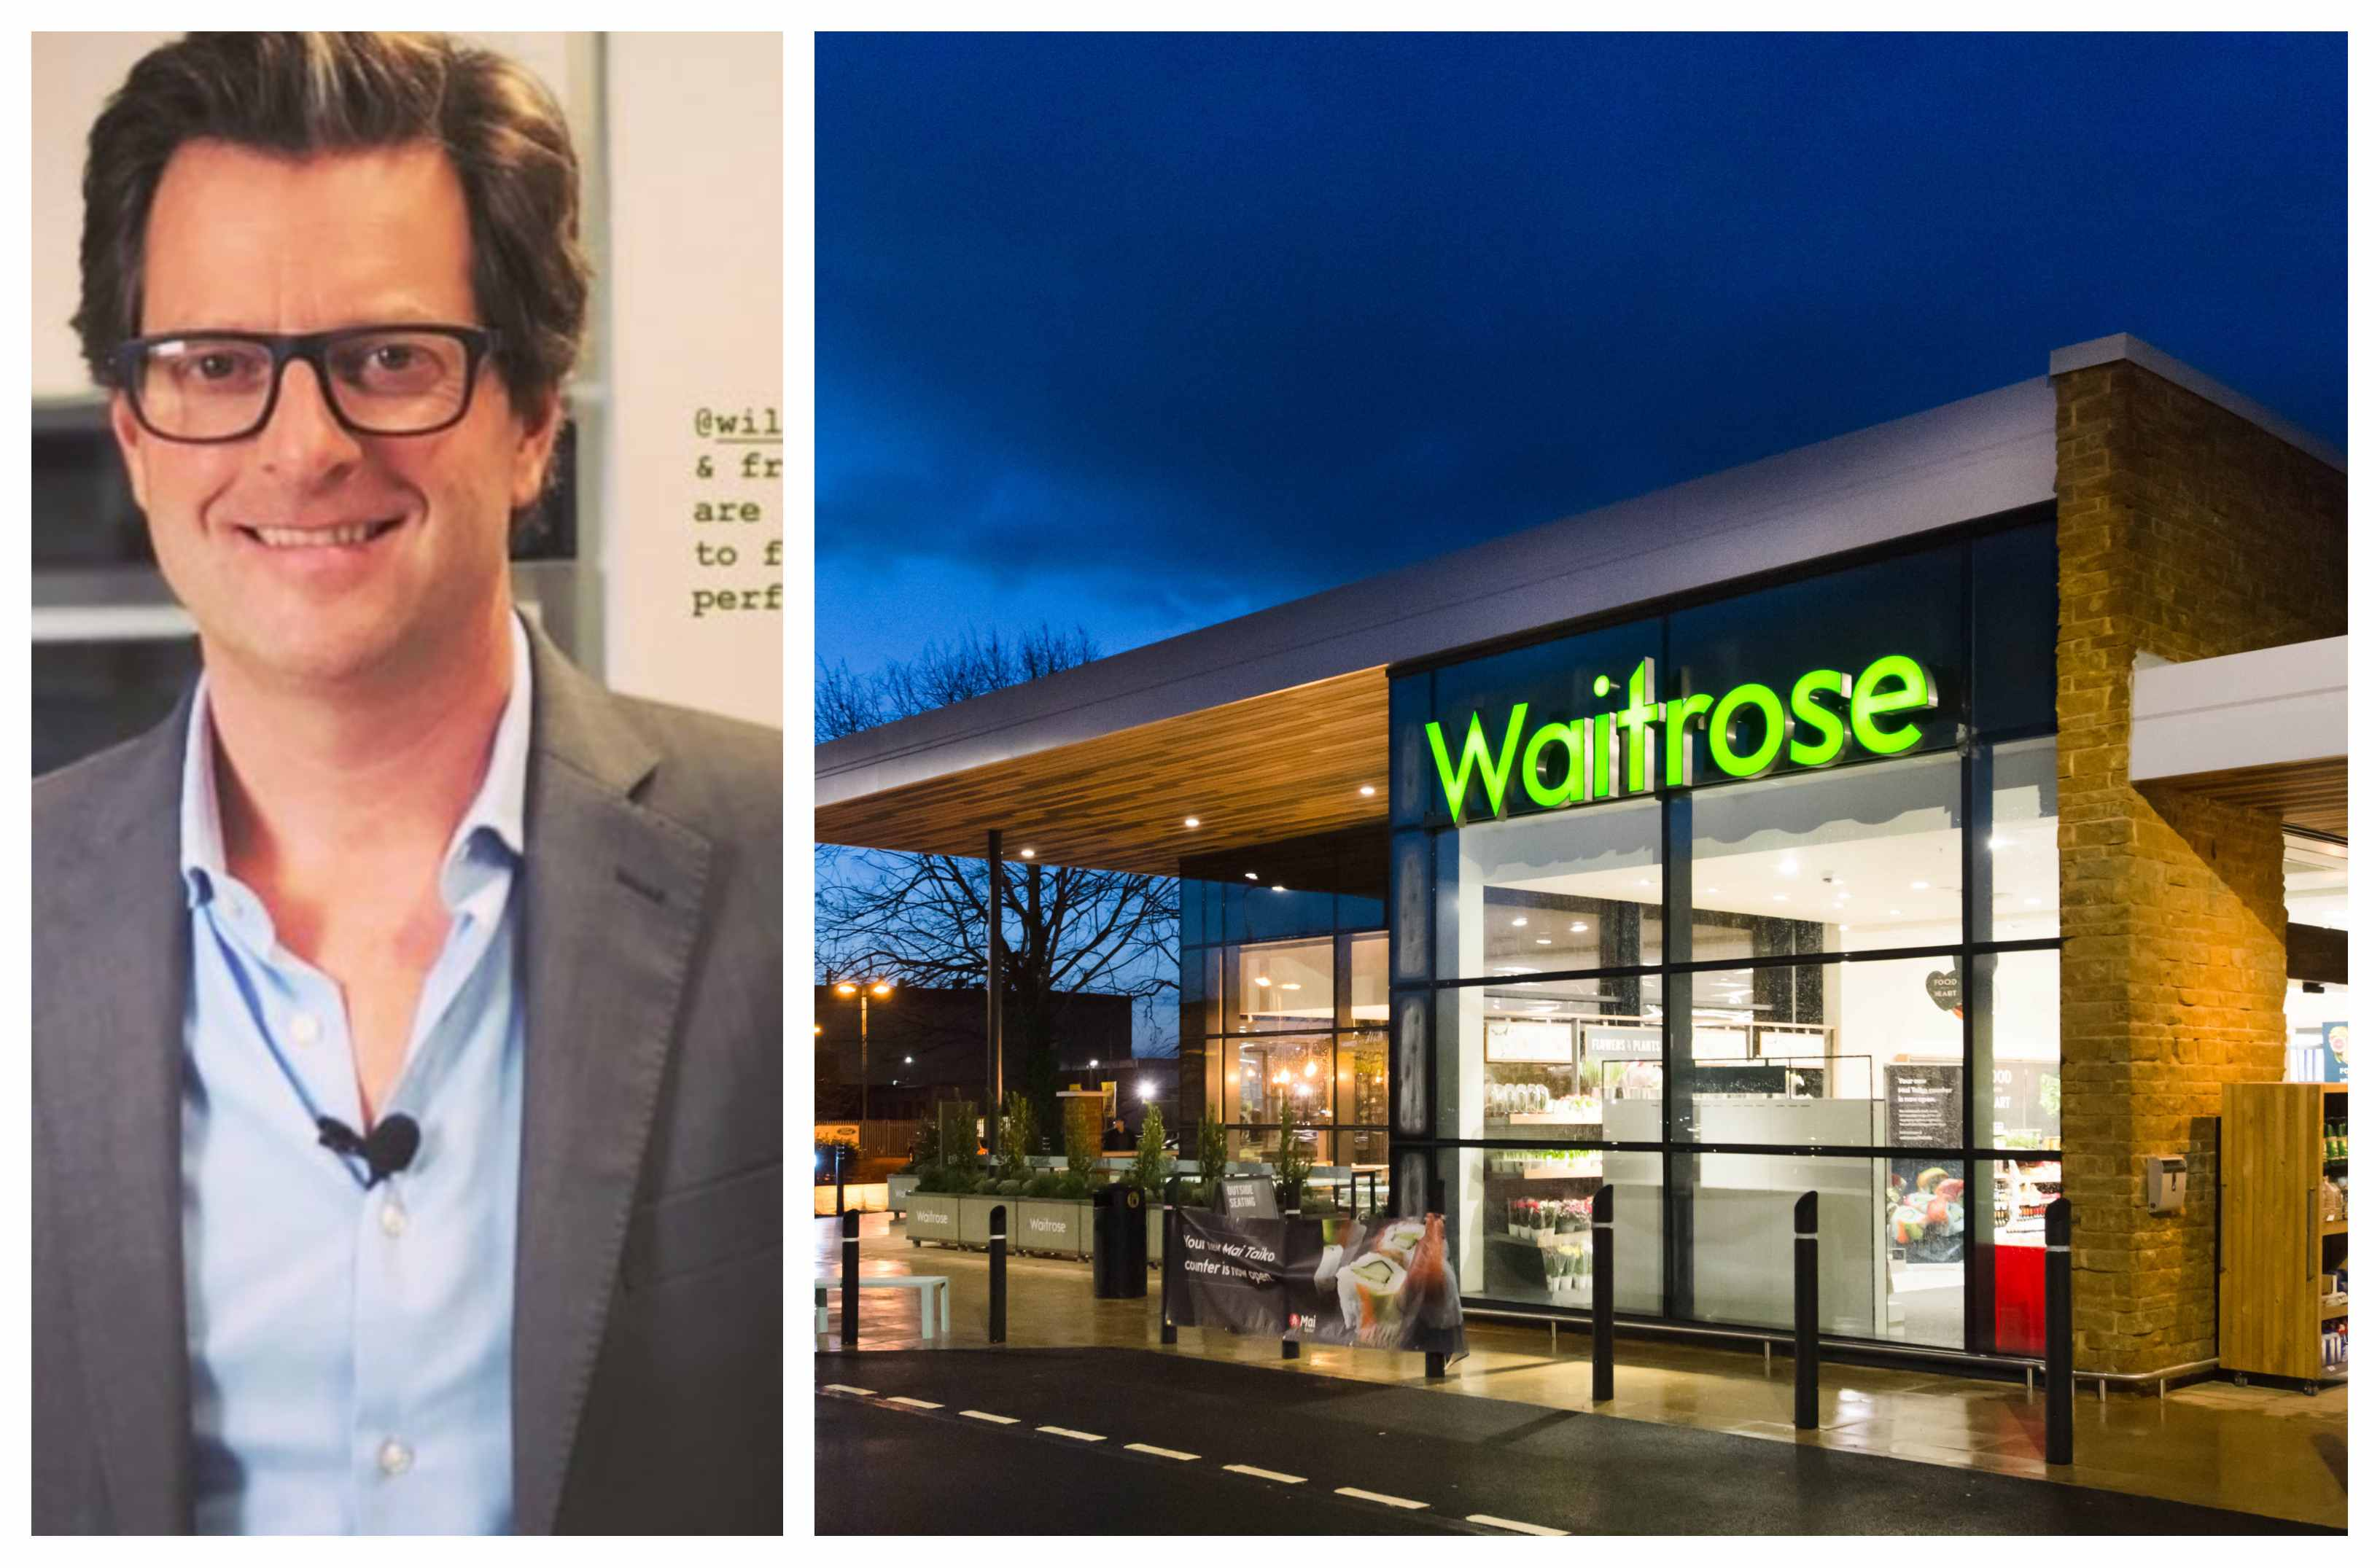 William Sitwell and Waitrose